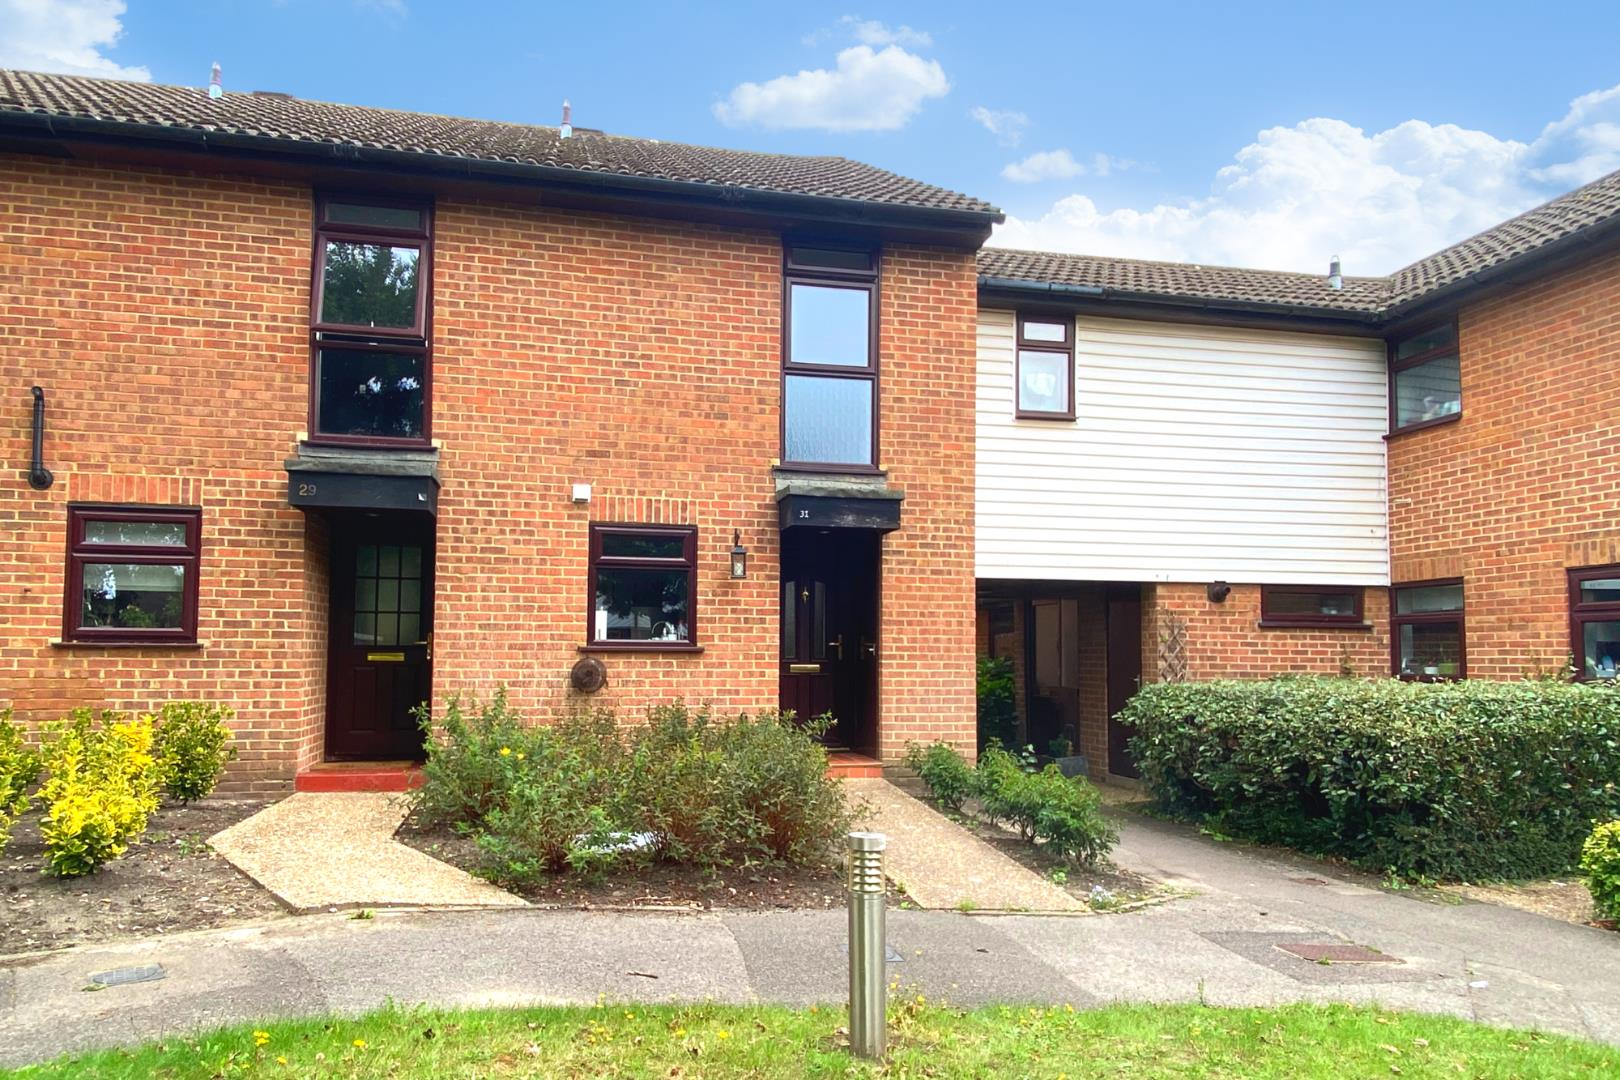 2 bed house for sale in Ash Vale - Property Image 1